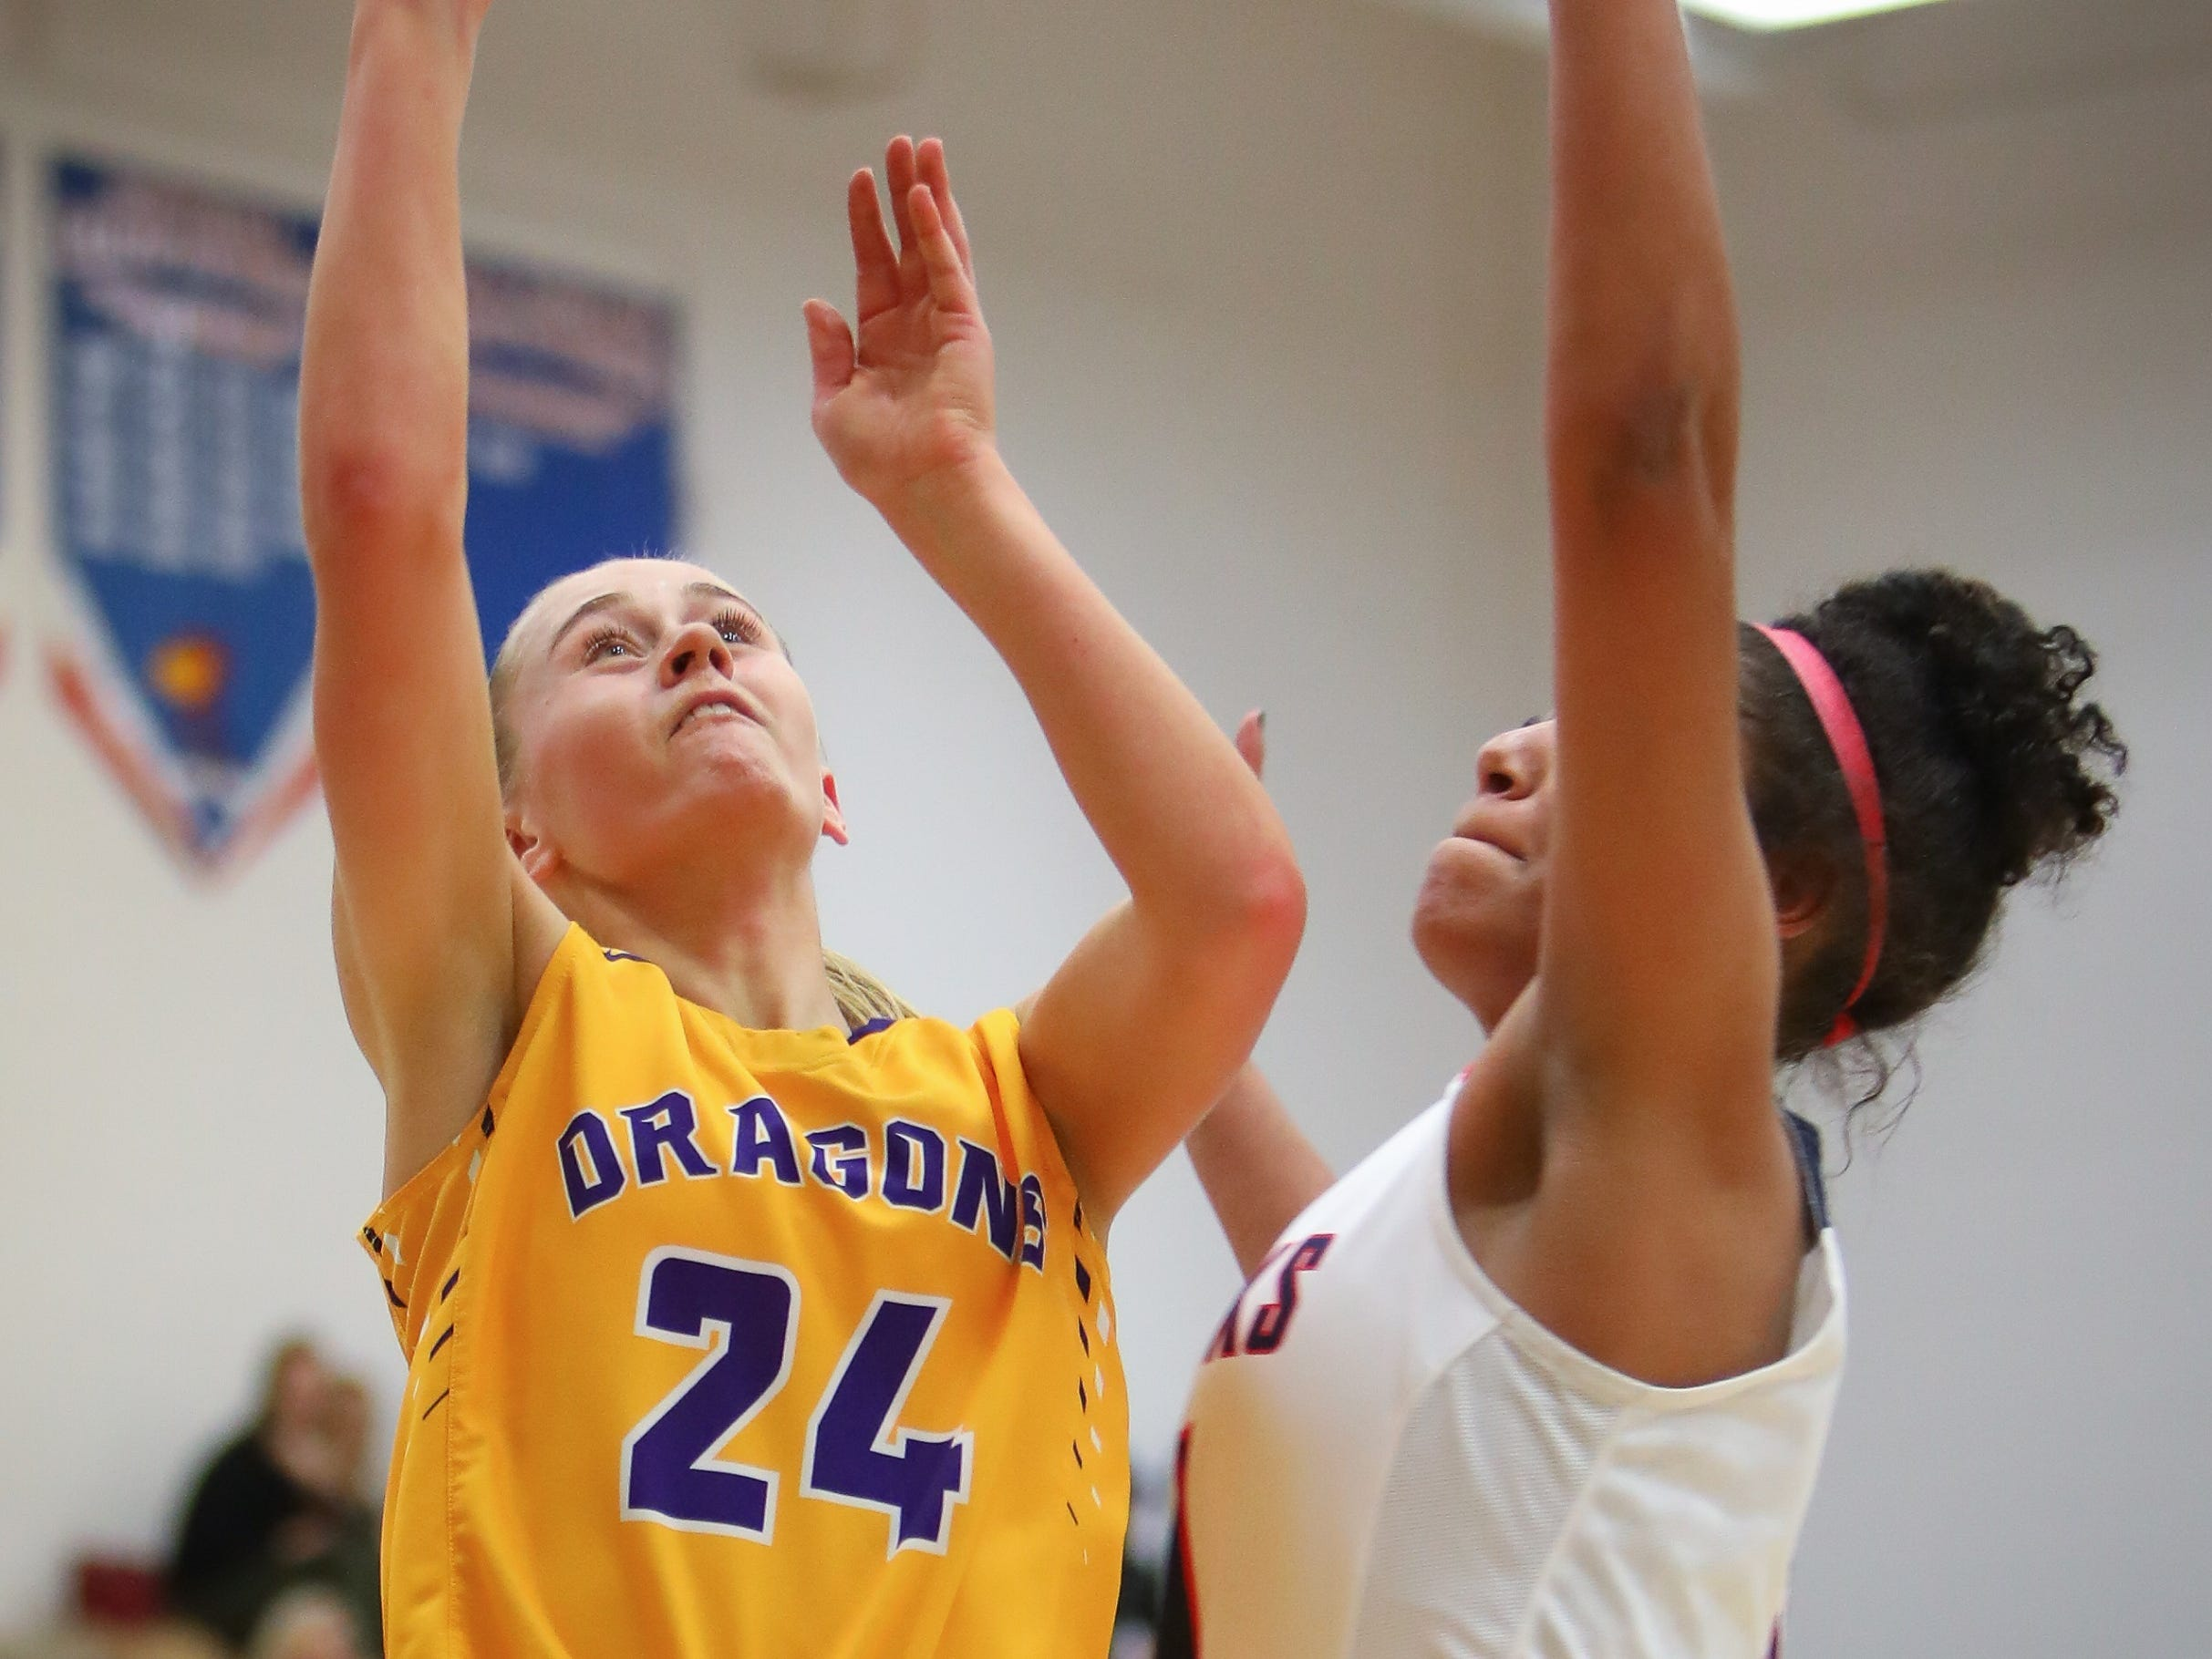 Johnston senior Macy Thompson goes for a layup over Urbandale junior Faith Putz during a girls high school basketball game between the Johnston Dragons and the Urbandale J-Hawks at Urbandale High School on Dec. 18, 2018 in Urbandale, Iowa.